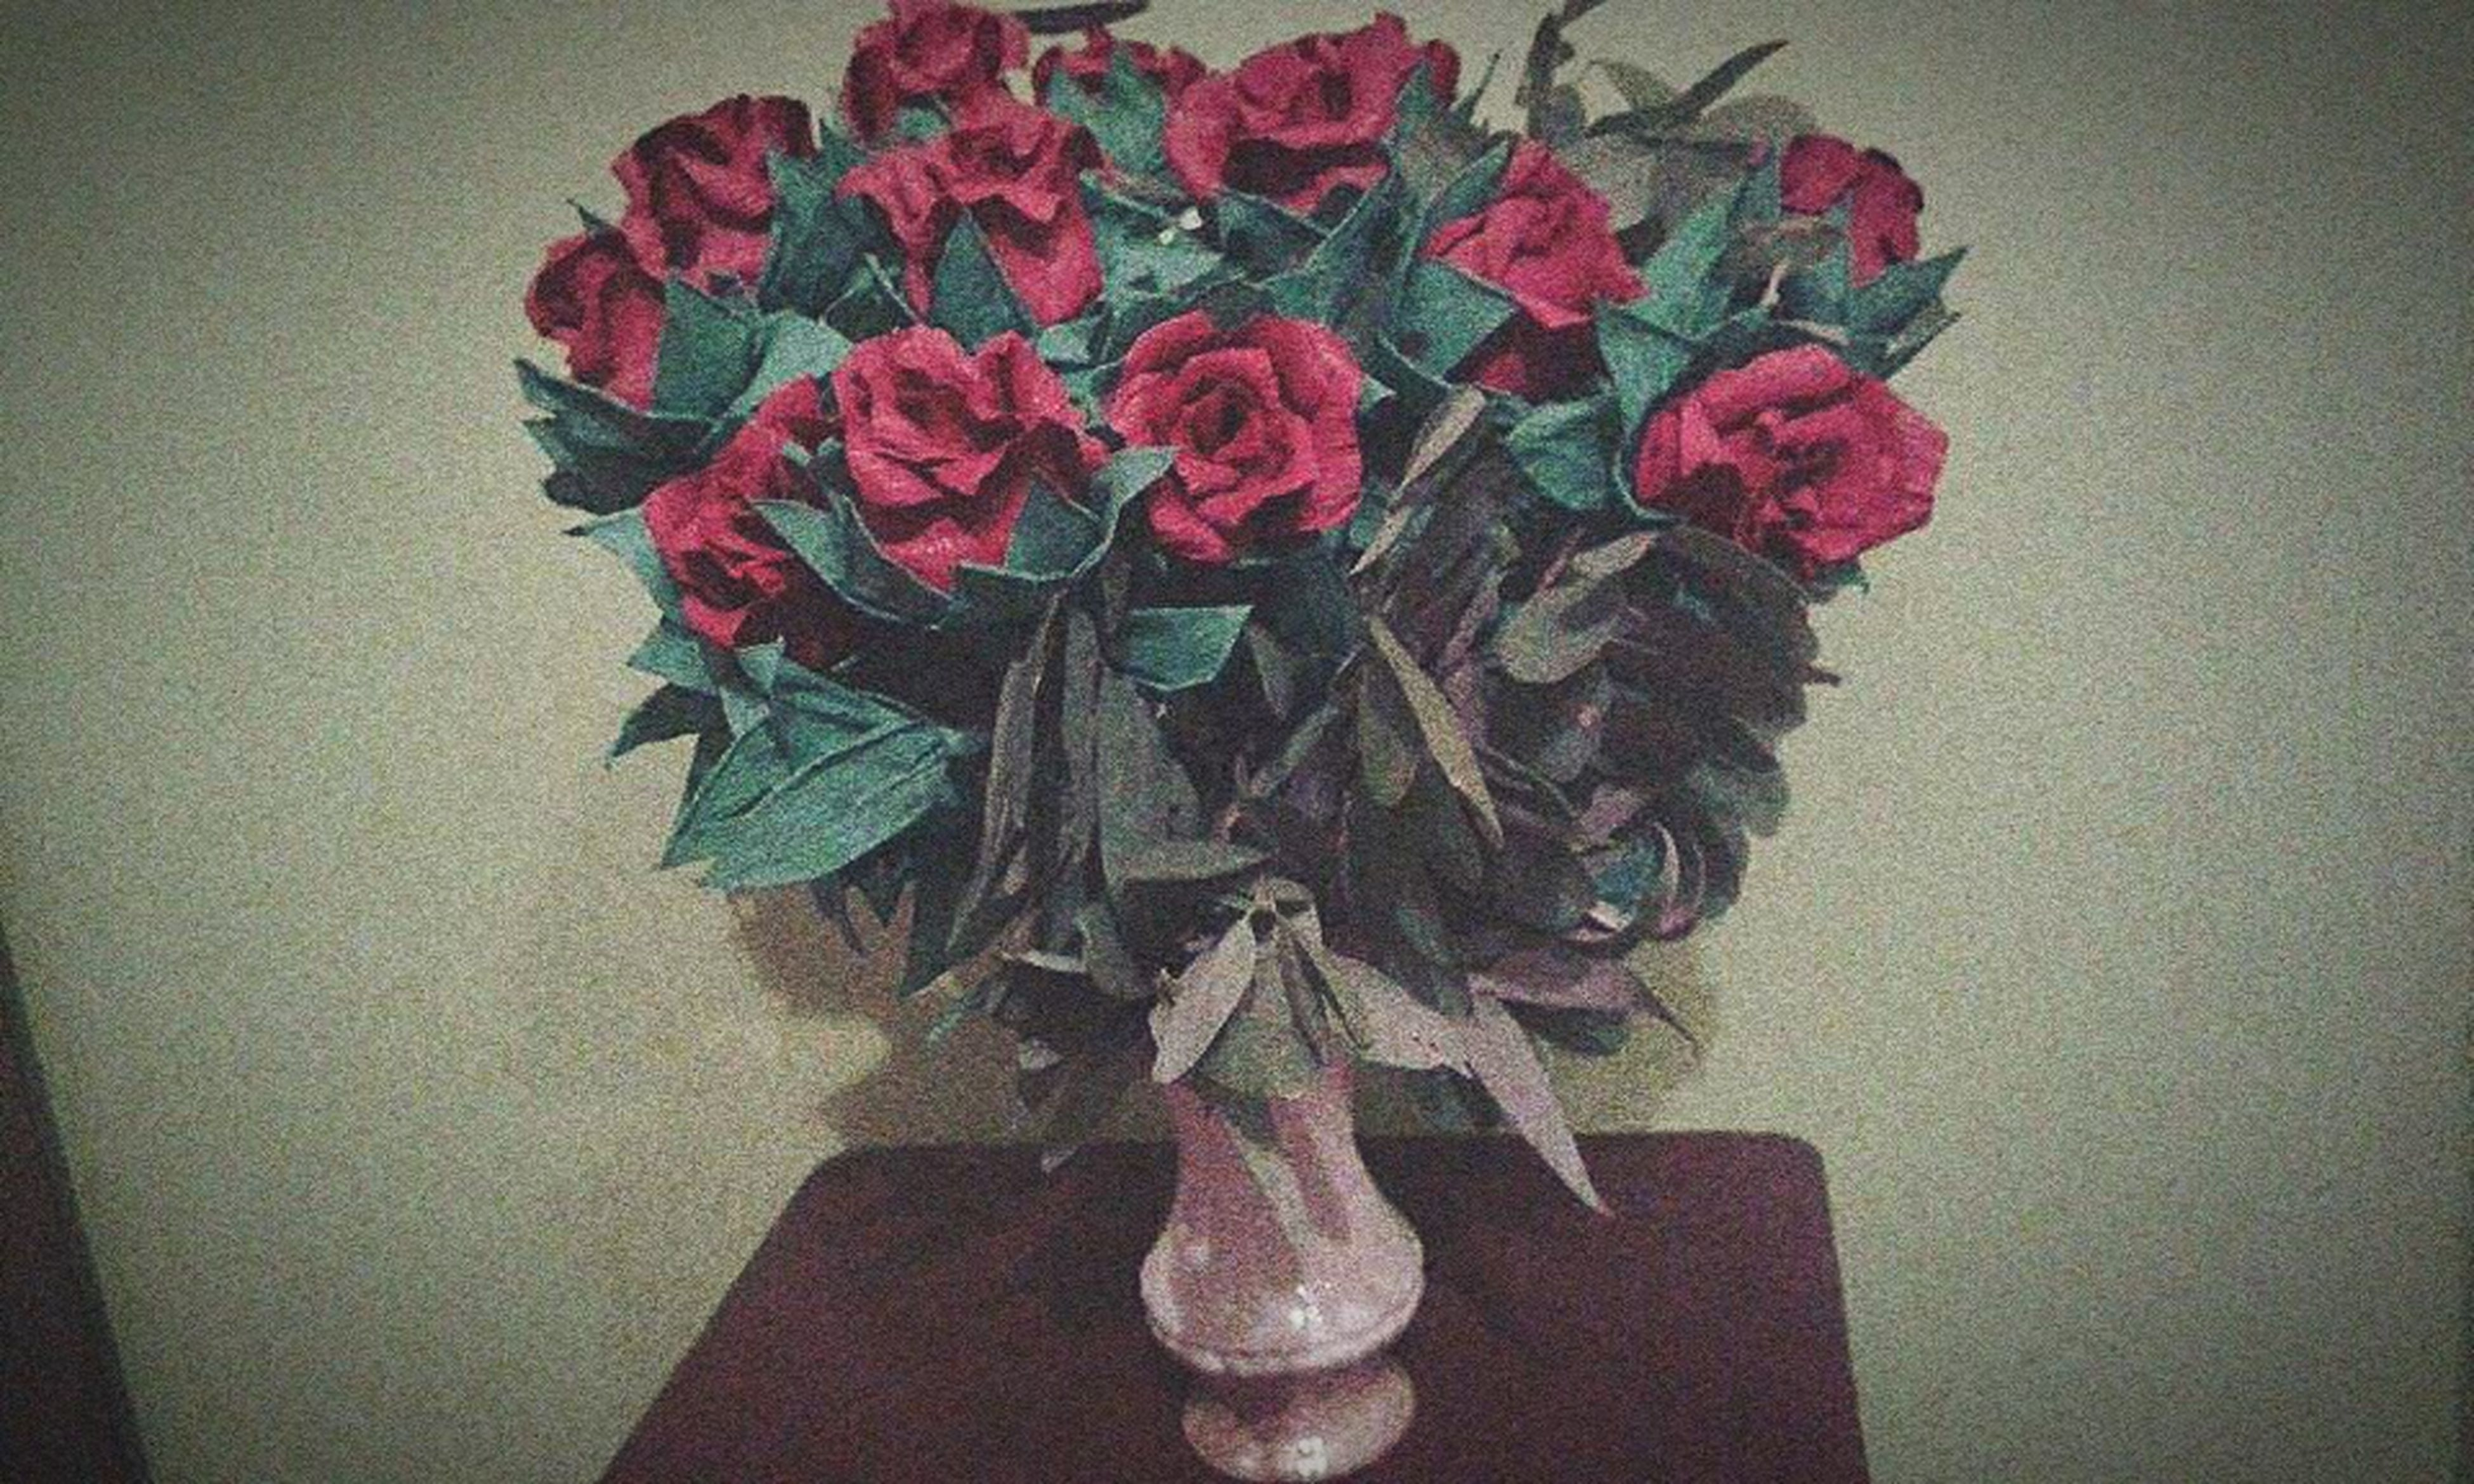 indoors, wall - building feature, still life, high angle view, close-up, flower, vase, table, home interior, art and craft, red, decoration, creativity, no people, rose - flower, art, wall, paper, shadow, bouquet